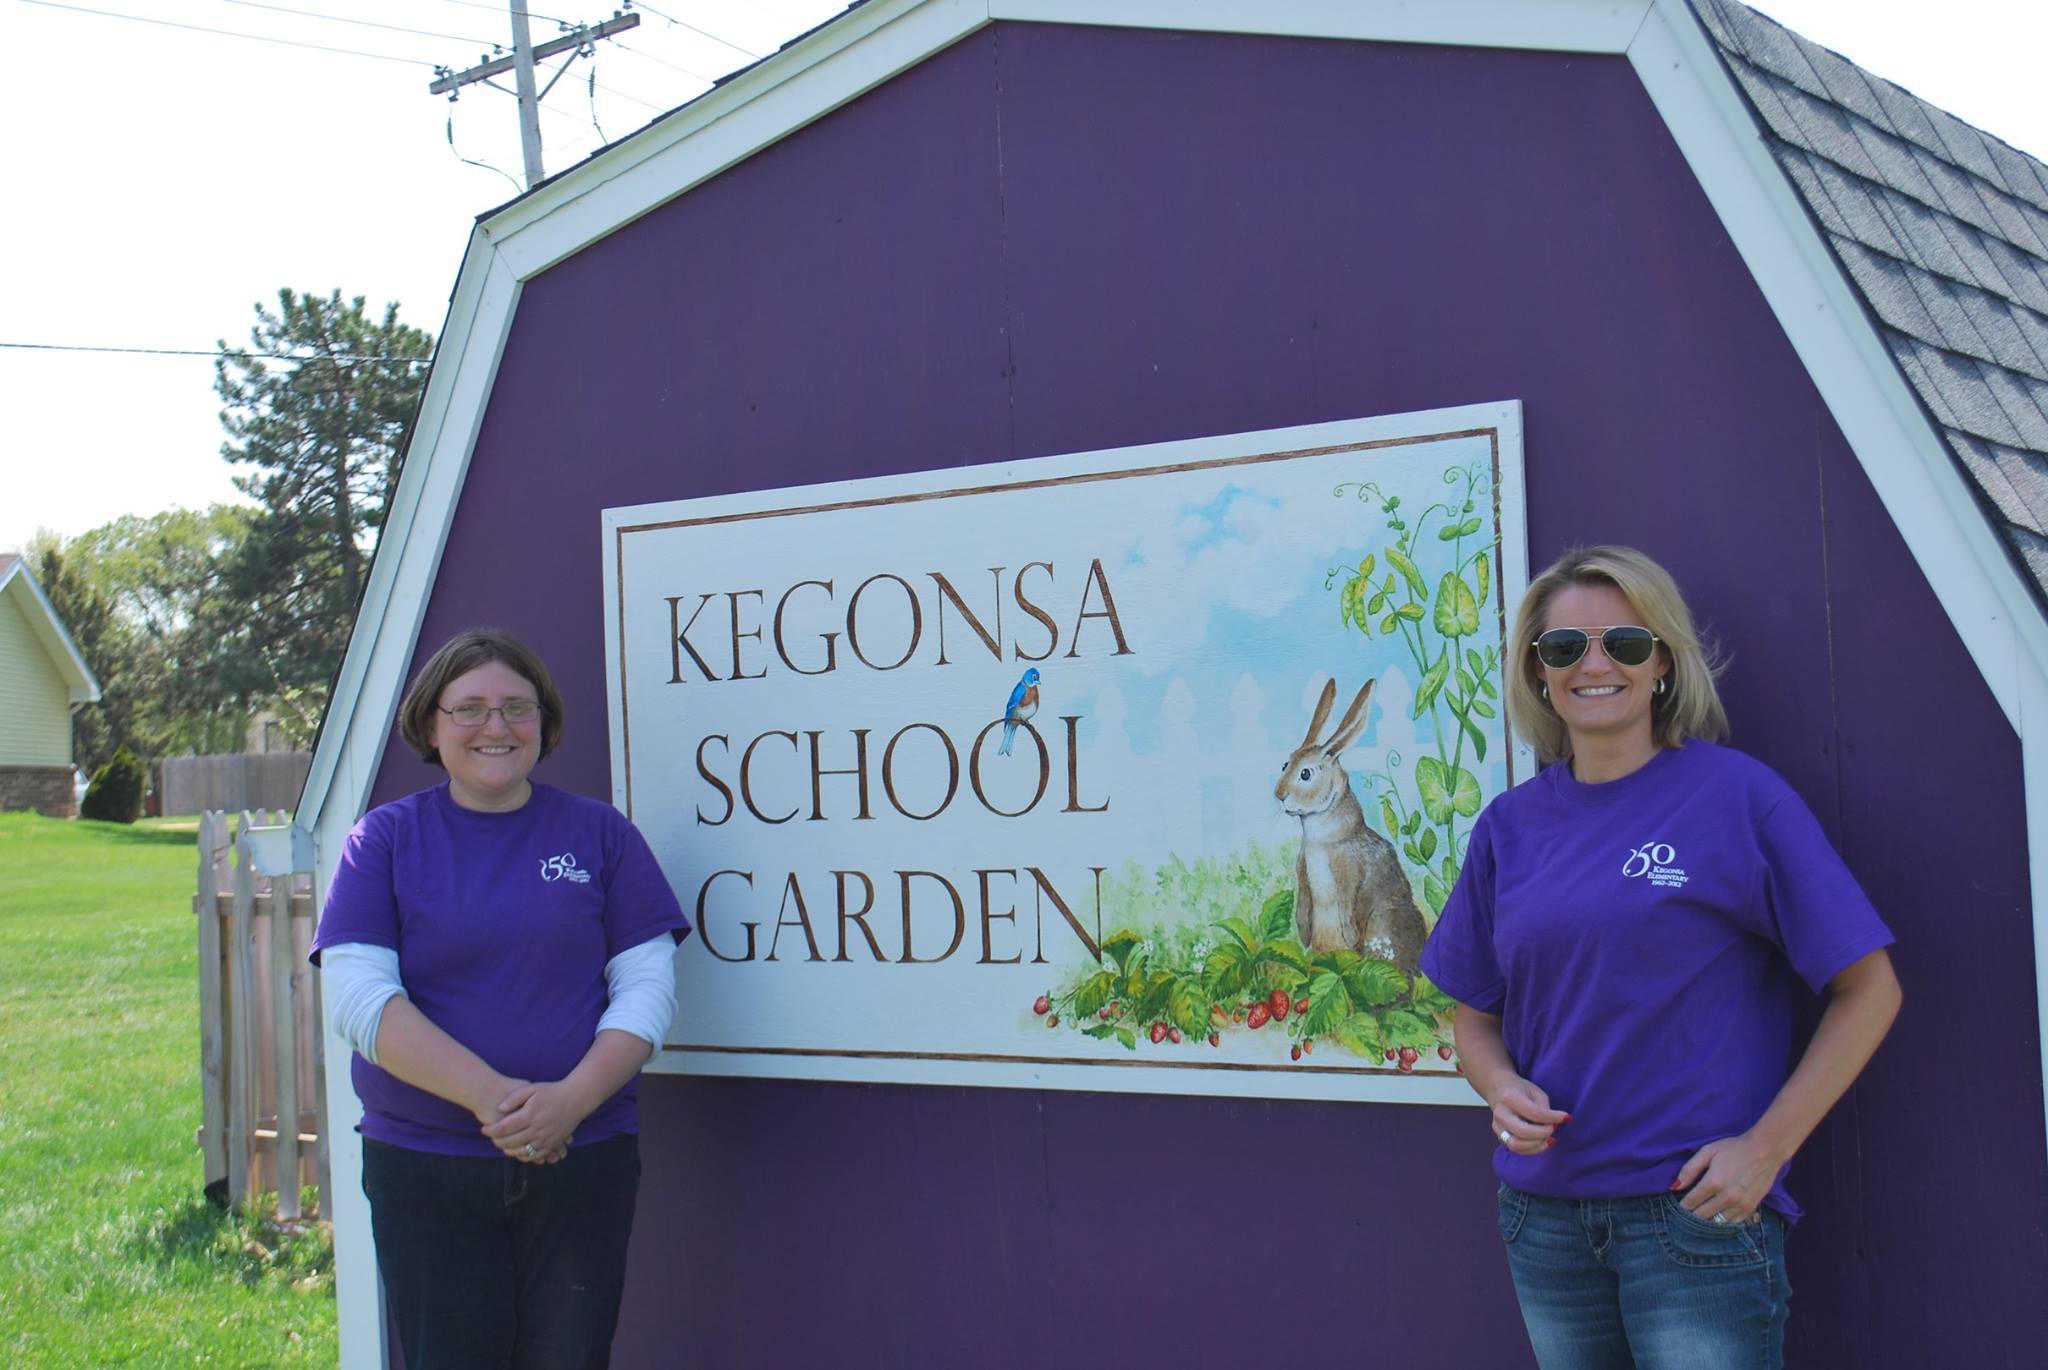 A public school garden funded in part by a grant from the Foundation